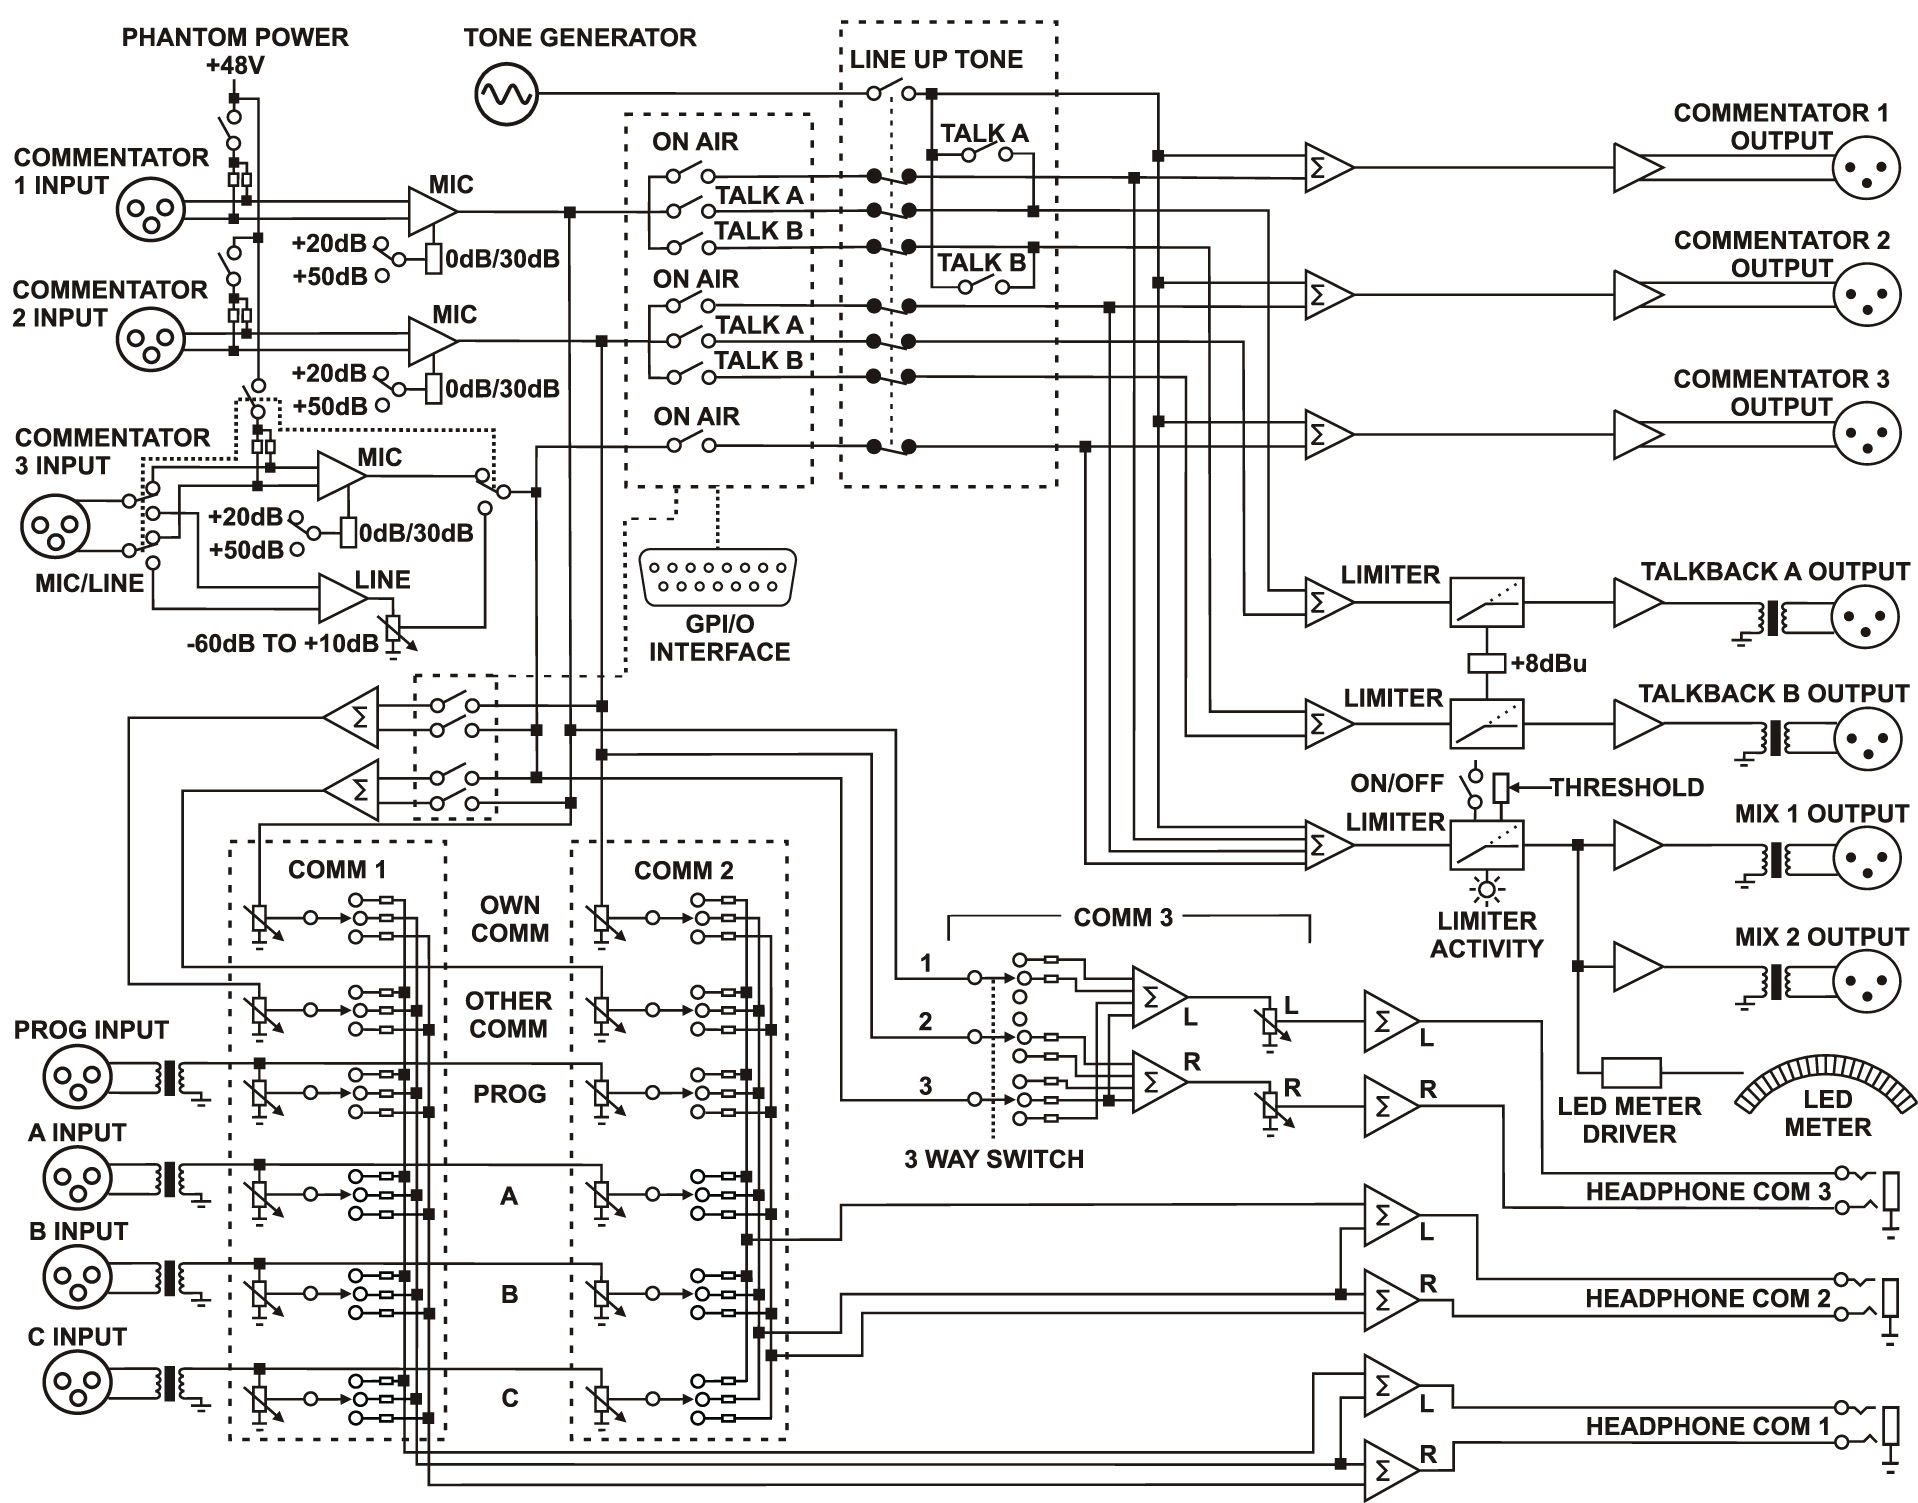 Sonifex Cm Cu21 Commentatator Unit Radio Circuit Further Fm Detector Diagram Likewise Low Power See Larger Image